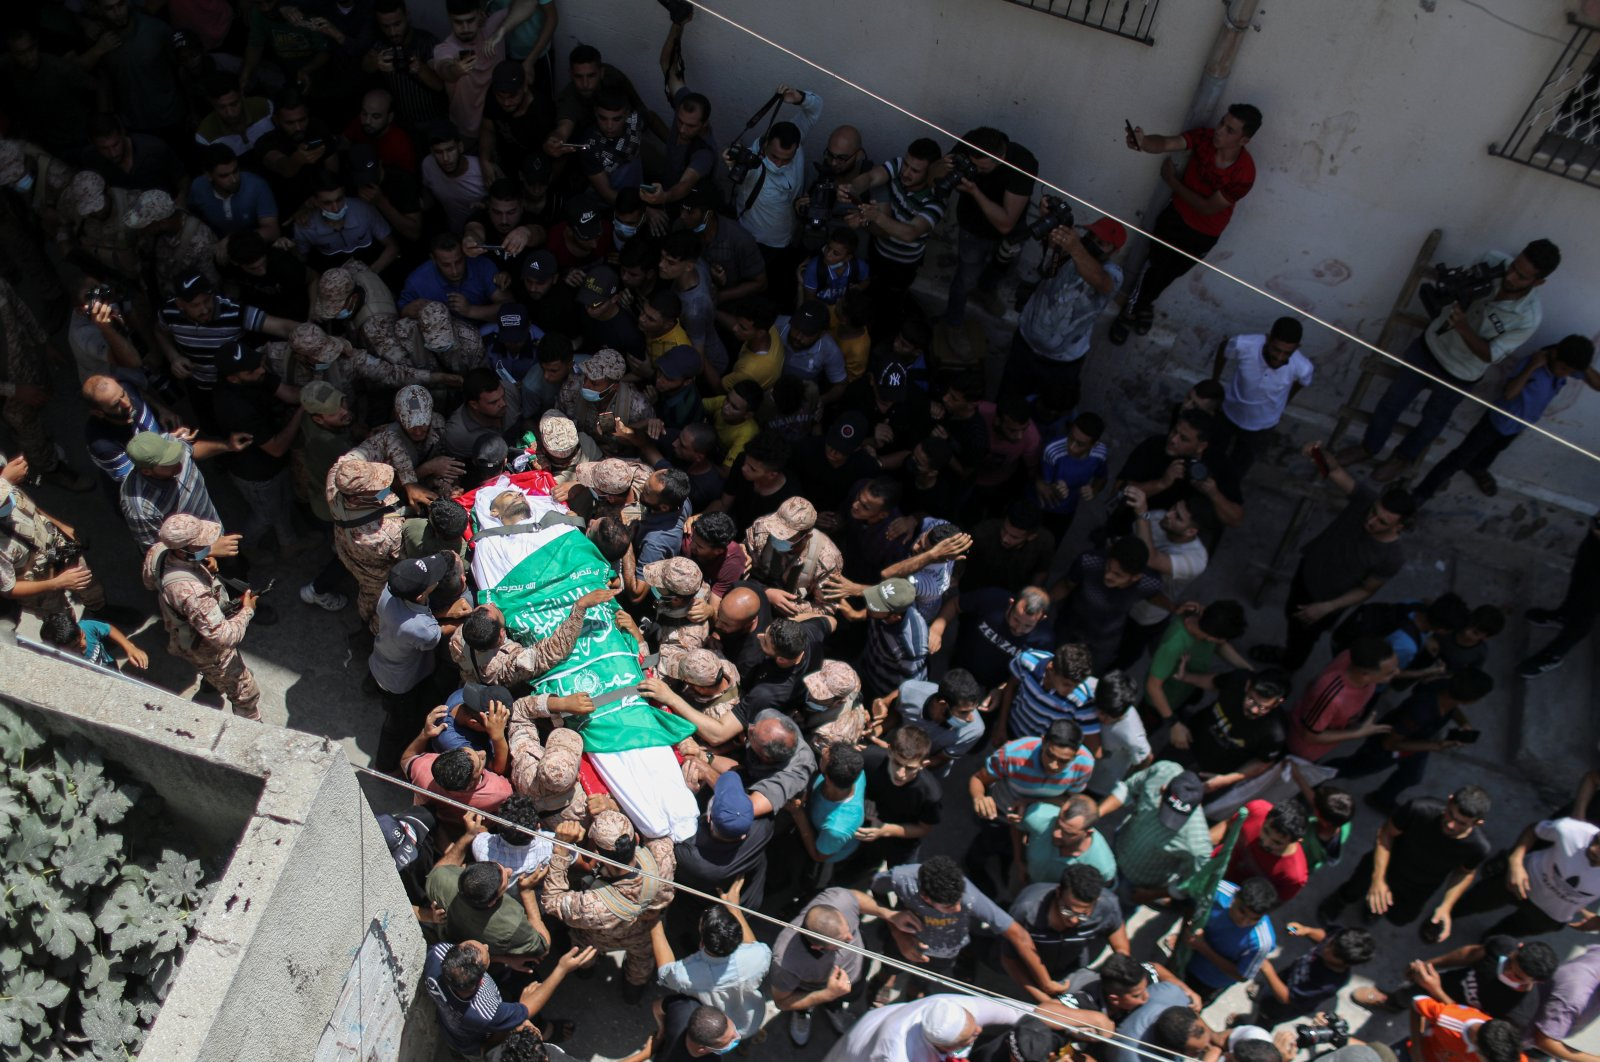 Mourners carry the body of Palestinian Osama Deeij, who died of a wound he sustained during an anti-Israel protest at the Israel-Gaza border fence on Saturday, Gaza Strip, Palestine, Aug. 25, 2021. (Reuters Photo)